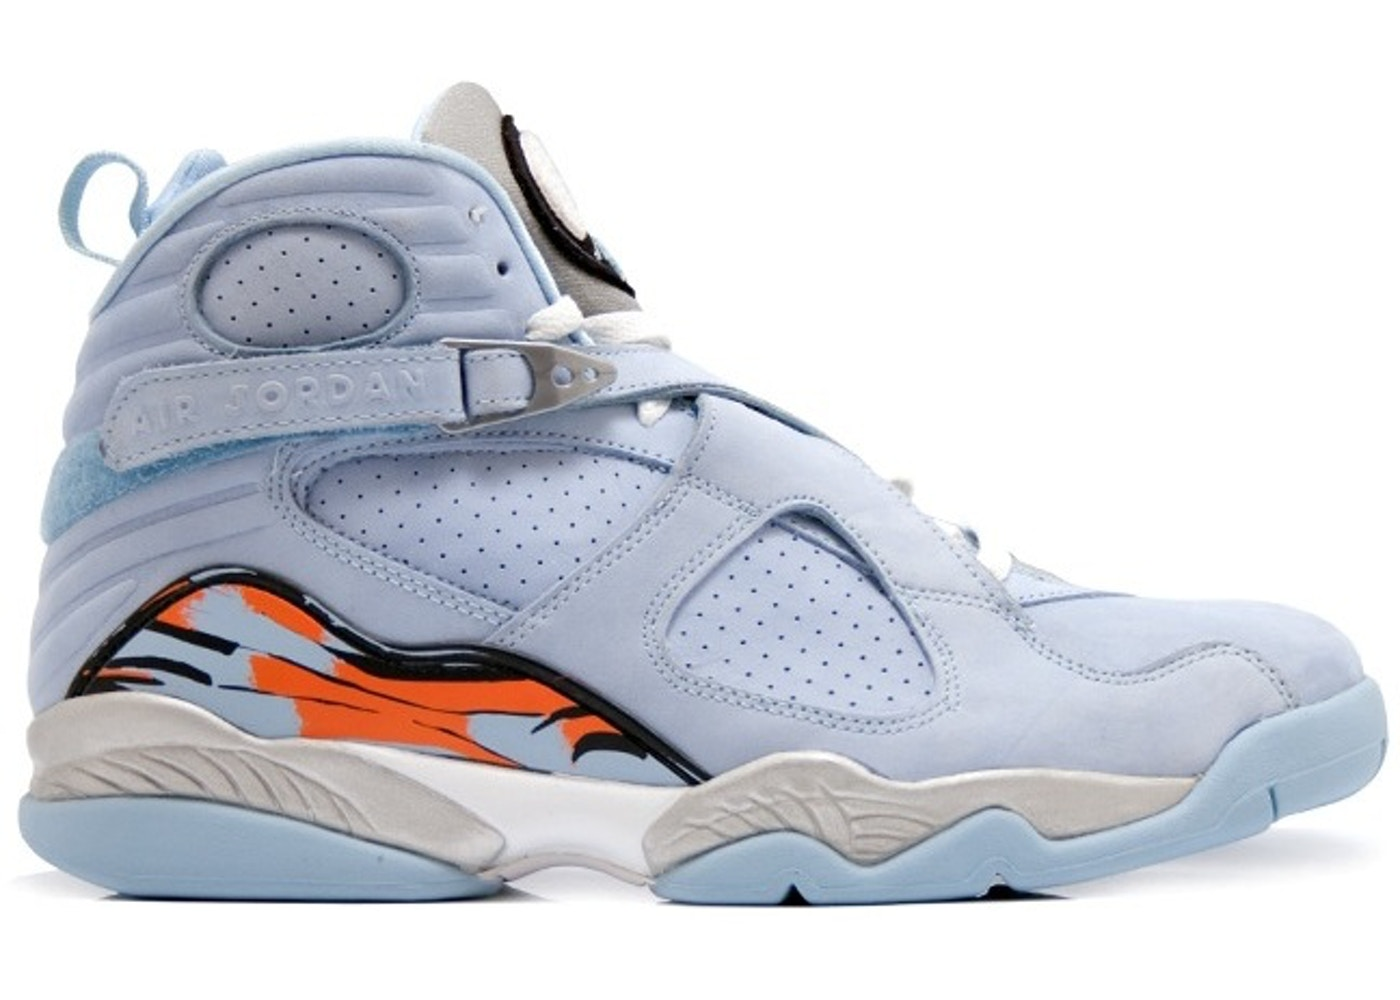 los angeles e8254 0fc08 Air Jordan 8 Shoes - Average Sale Price